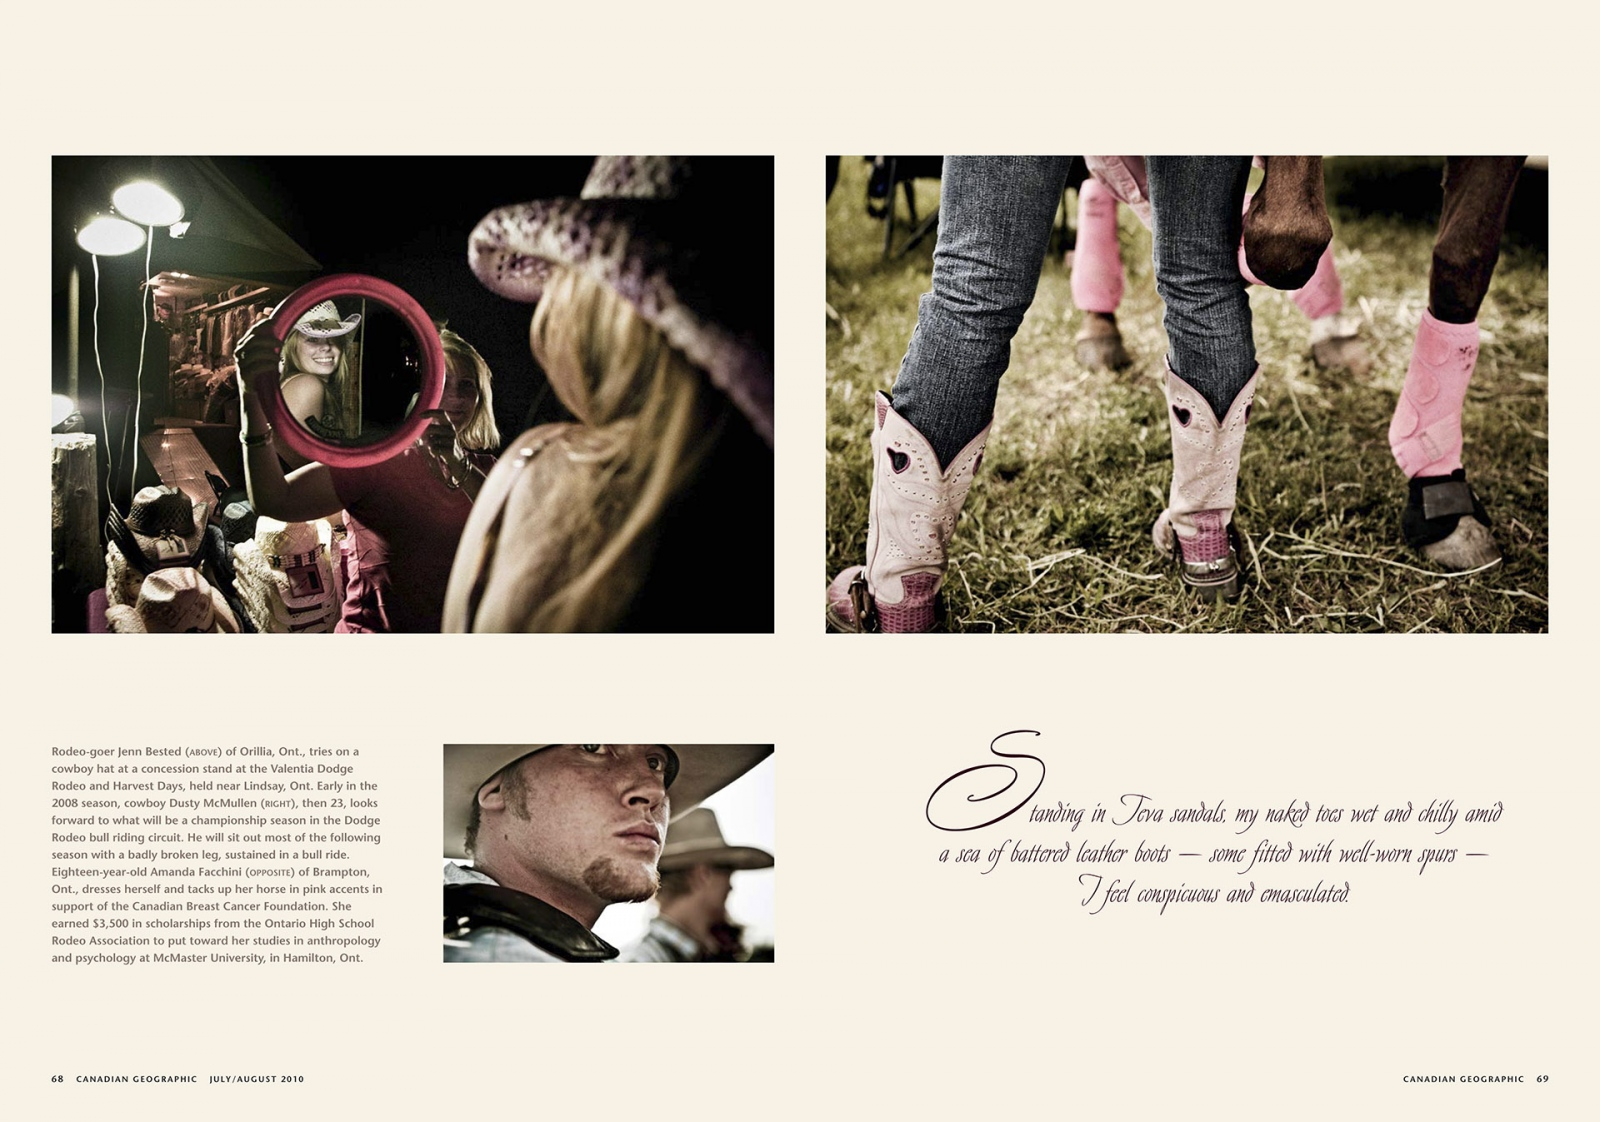 Art and Documentary Photography - Loading 010_CanGeoSemiFinalLayout-Rodeo-5.jpg